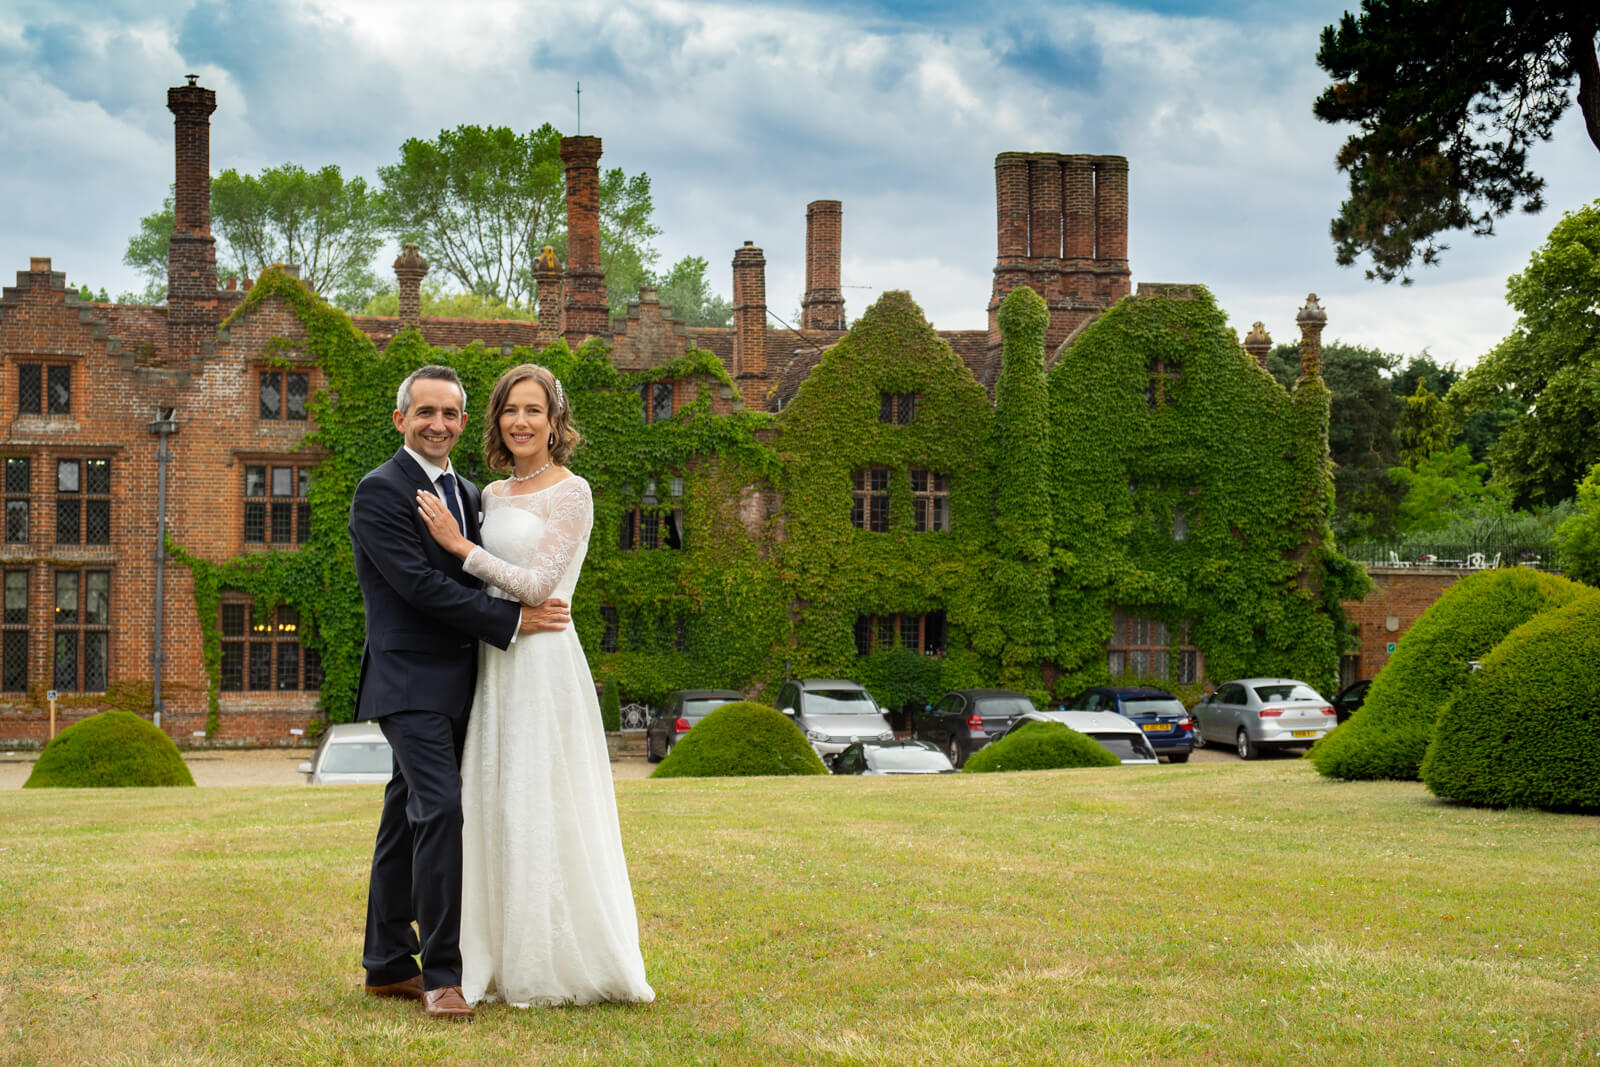 Bride and groom stand together inforn of a country manor house with tall chimneys and ivy